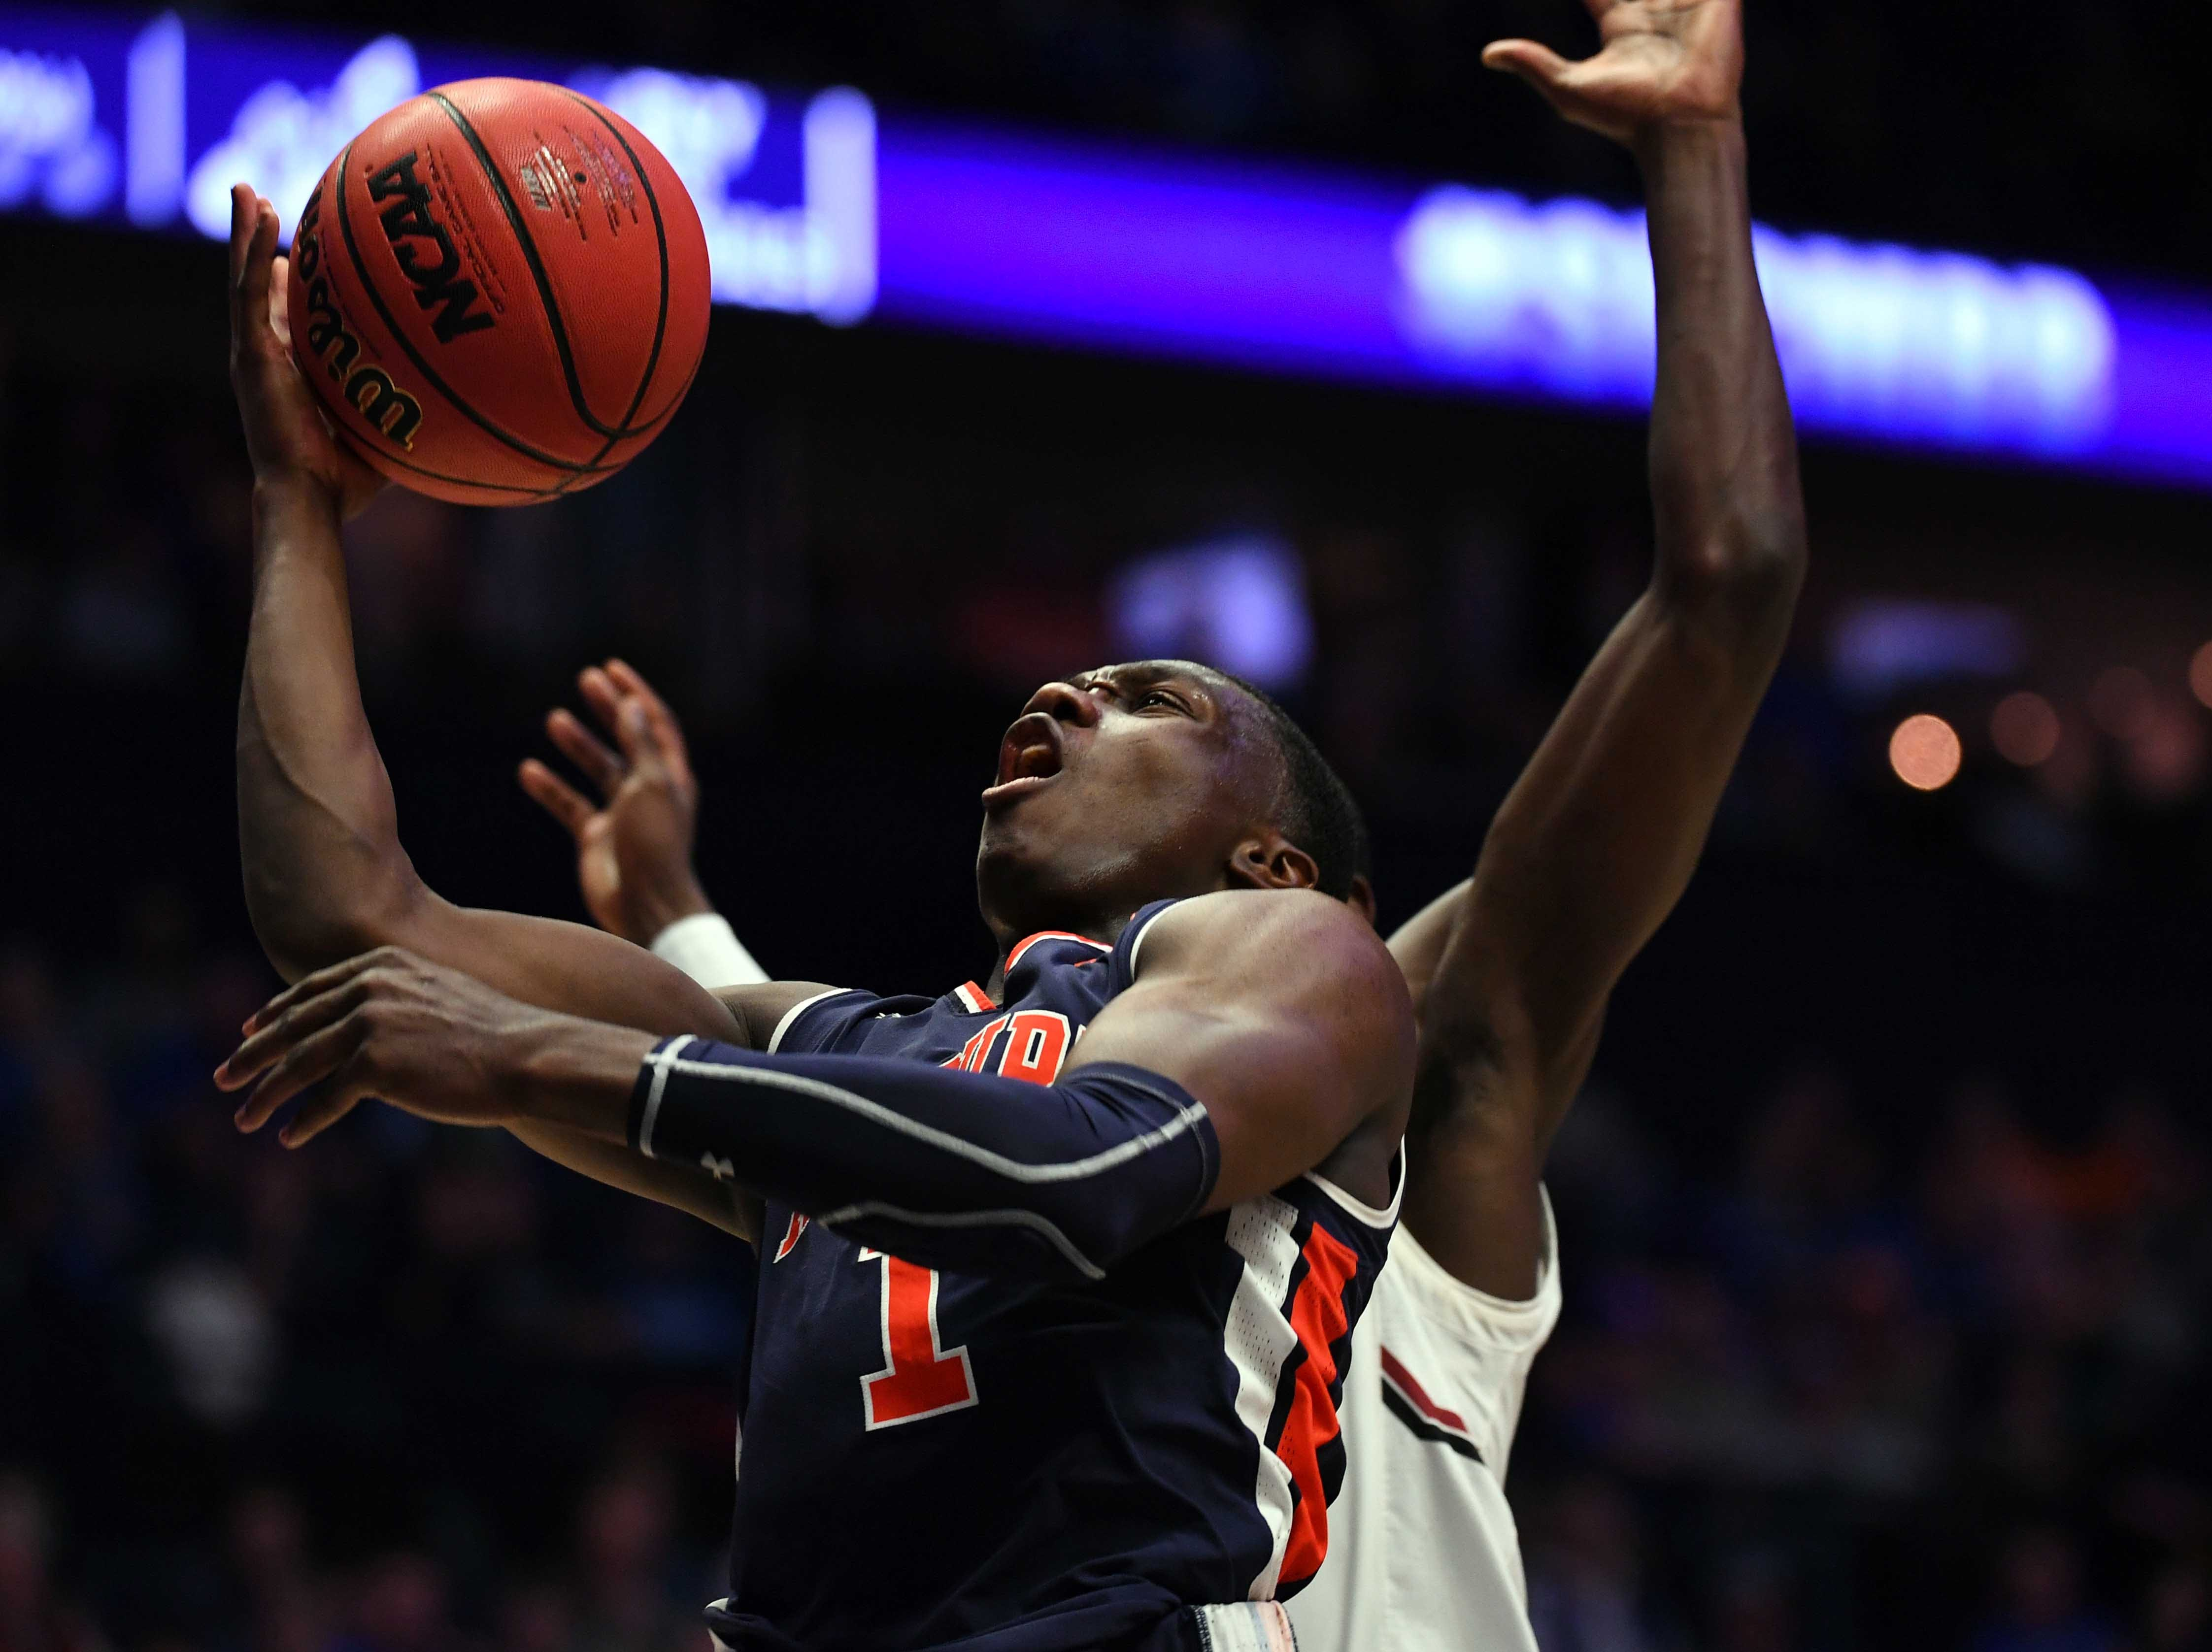 Mar 15, 2019; Nashville, TN, USA; Auburn Tigers guard Jared Harper (1) is fouled as he tries a layup during the second half against the South Carolina Gamecocks in the SEC conference tournament at Bridgestone Arena. Mandatory Credit: Christopher Hanewinckel-USA TODAY Sports